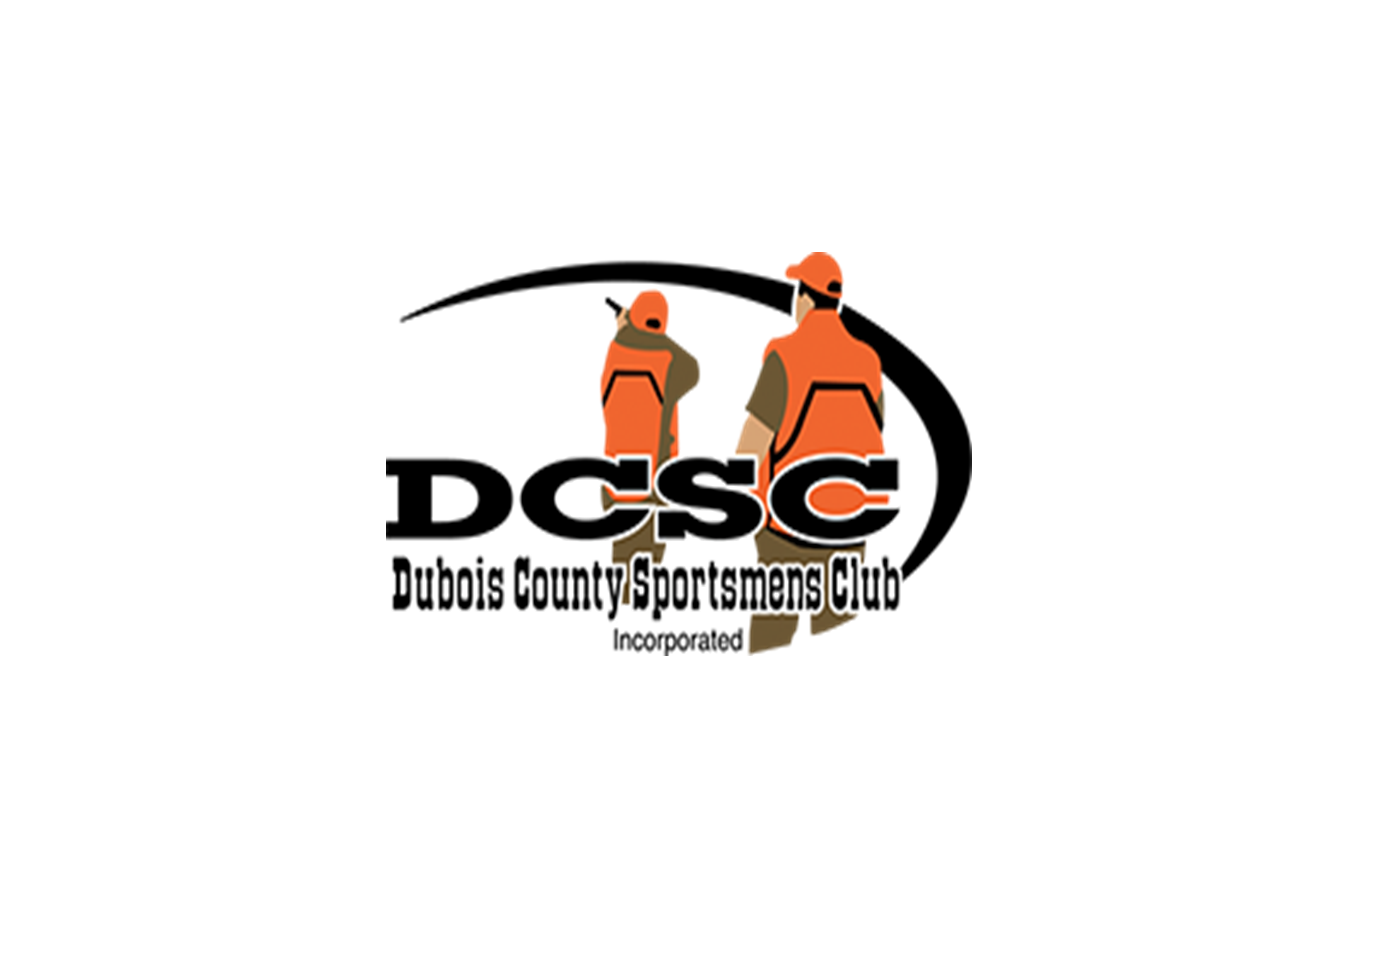 Dubois County Sportsmen's Club to Host 31st Annual Gun Raffle Monday Night